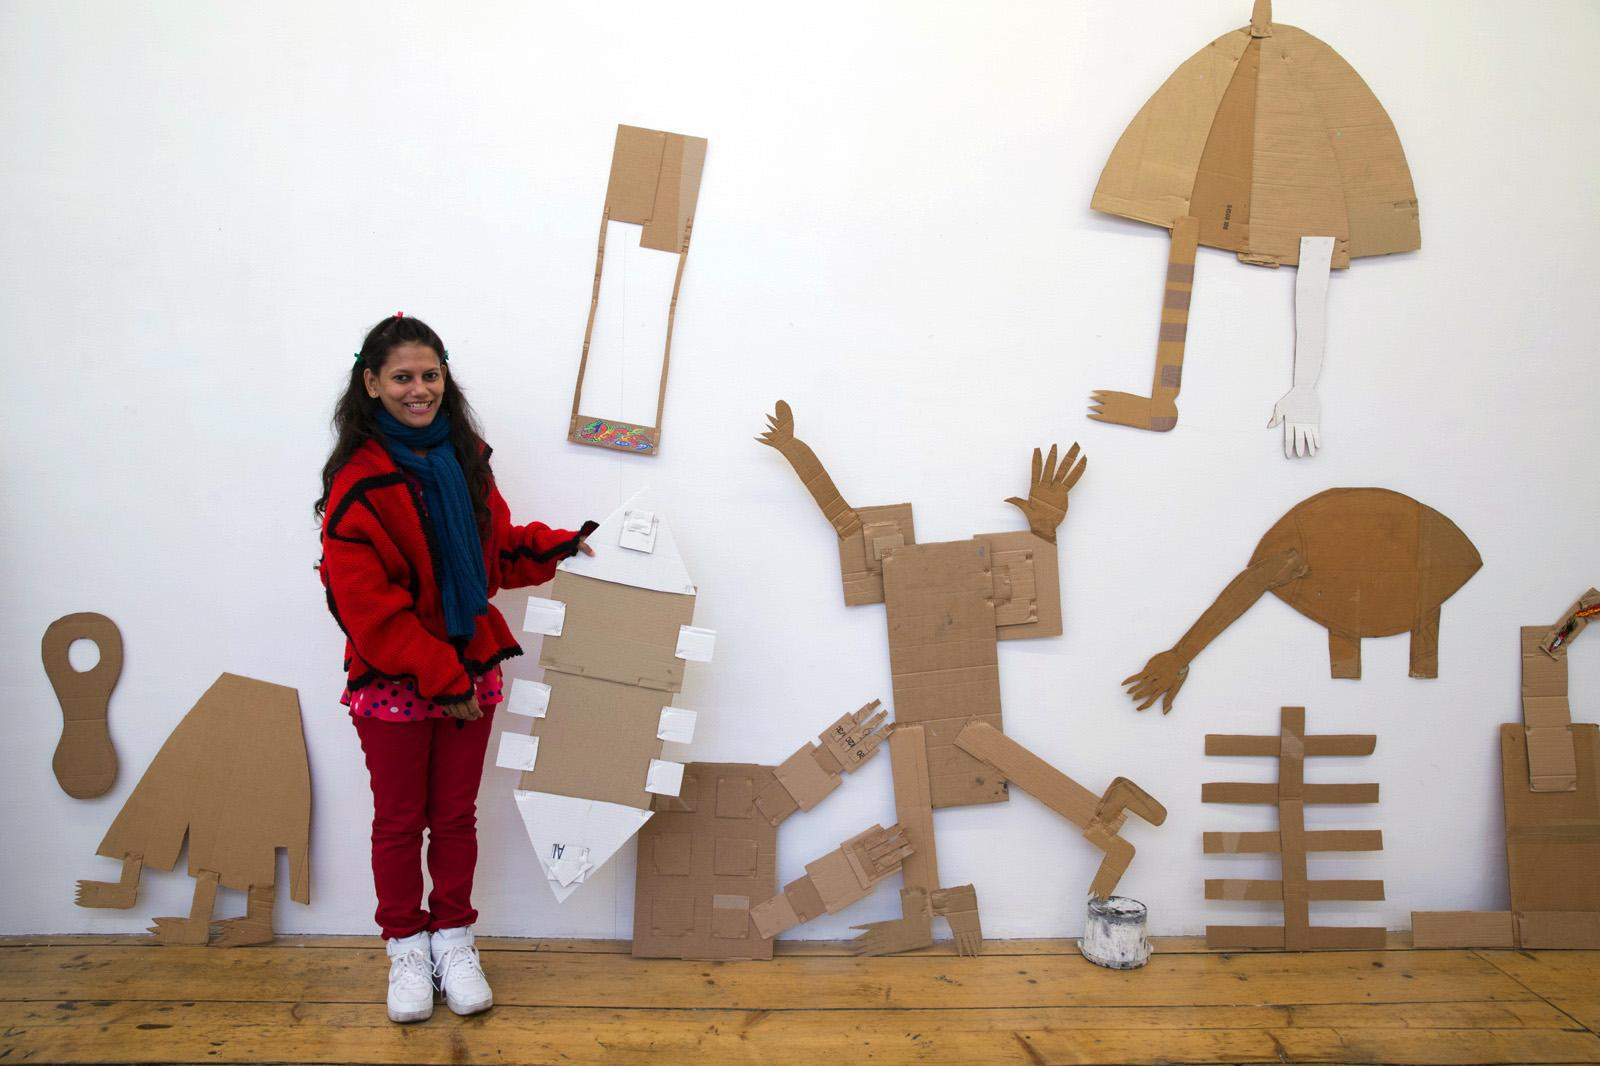 Rini Mitra in front of her artworks Krinzinger Projekte curated byDiana CampbellBetancourt Photo:eSeL